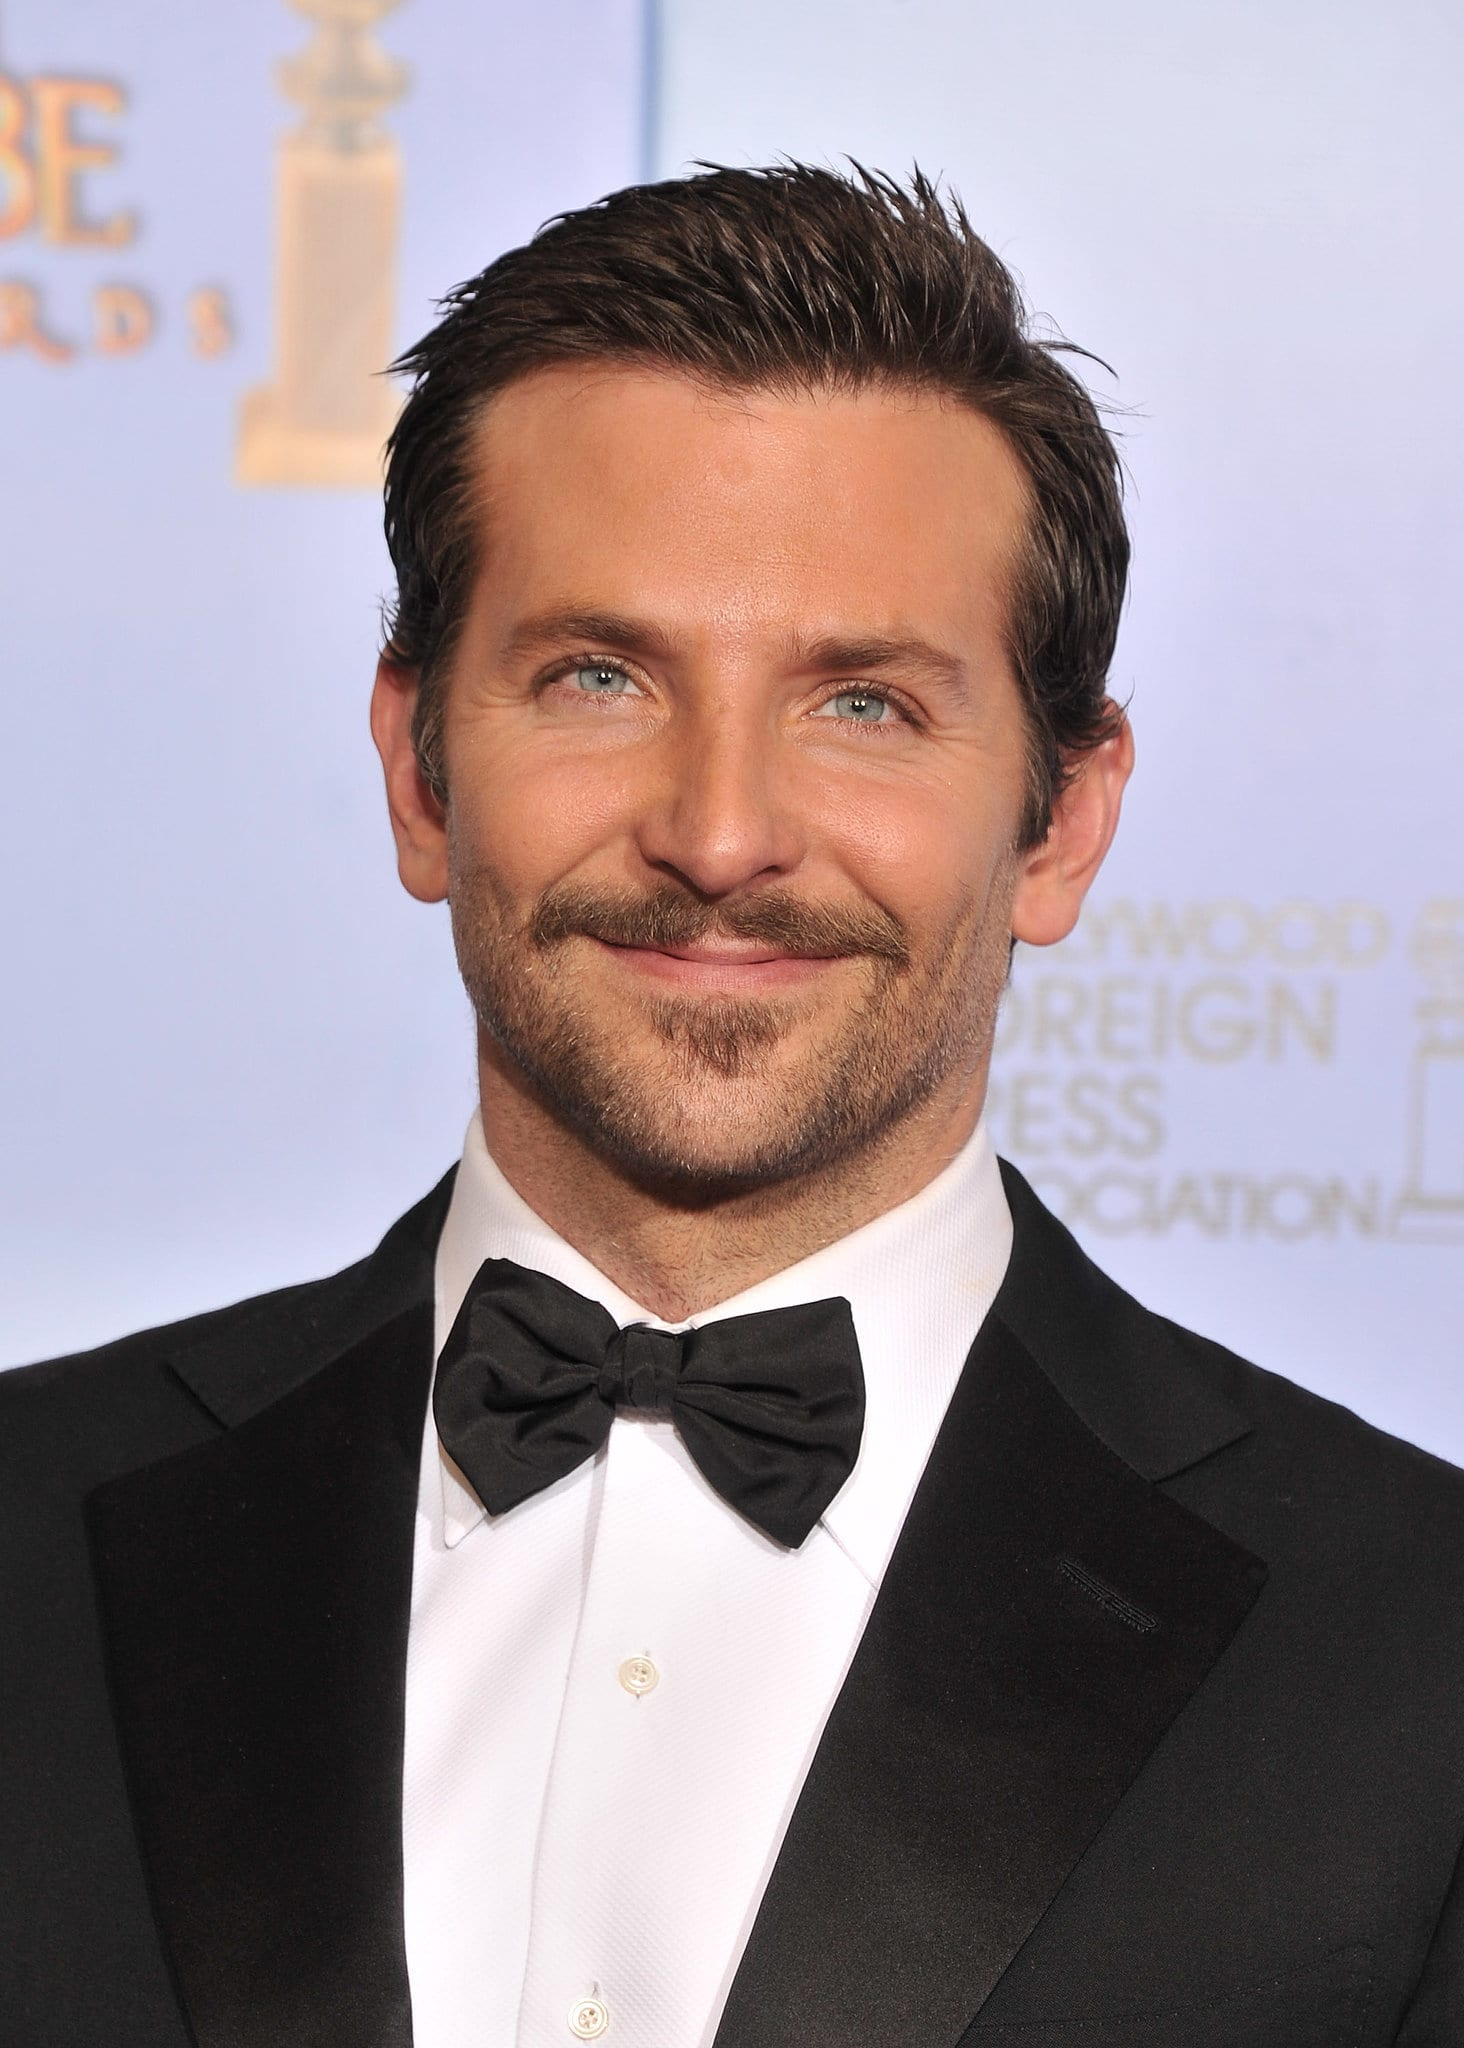 soul-patch-and-moustache-beard-styles-bearded-men-bradley-cooper